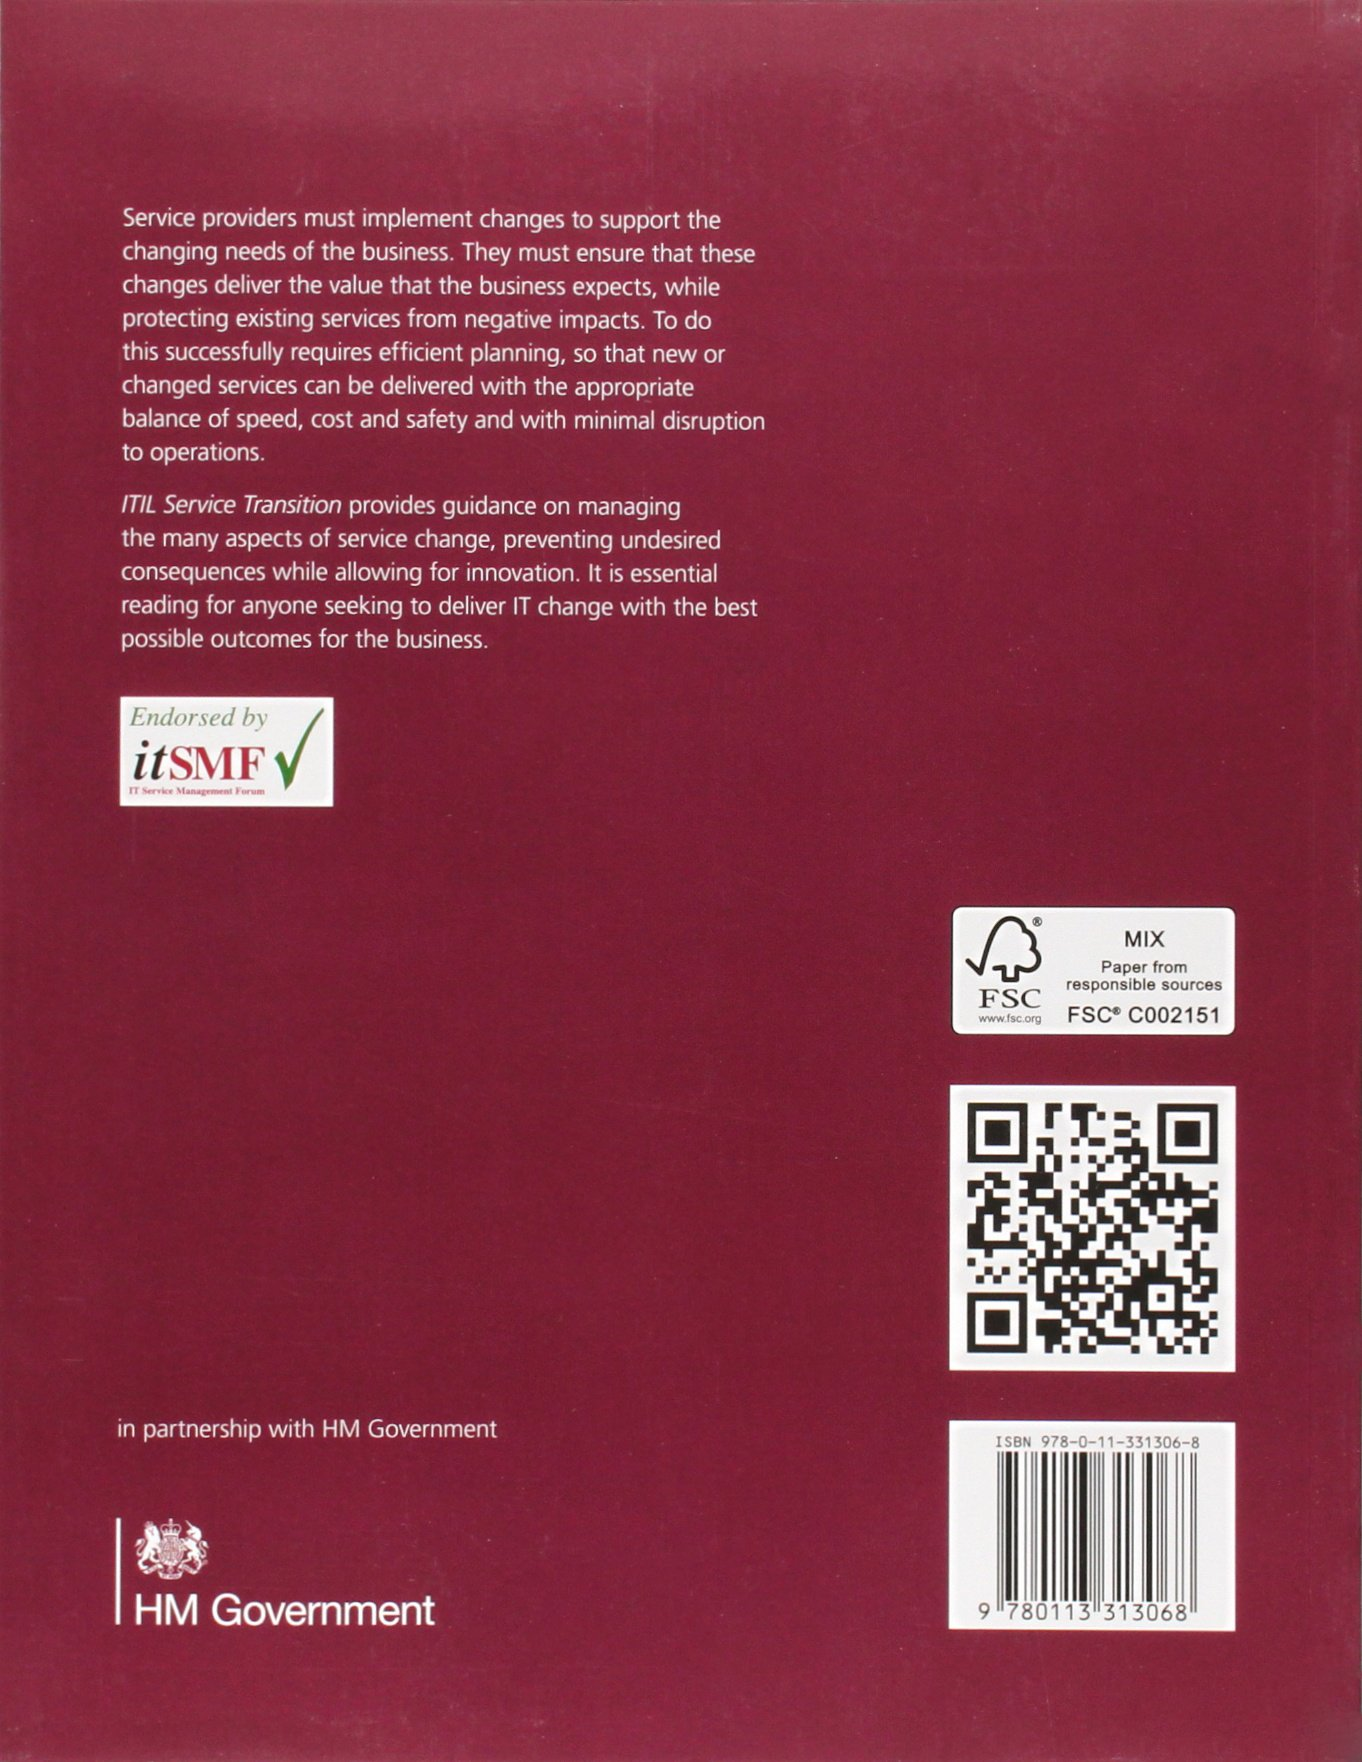 Itil lifecycle publication suite 2011 the stationery office itil lifecycle publication suite 2011 the stationery office 9780113313235 books amazon 1betcityfo Choice Image